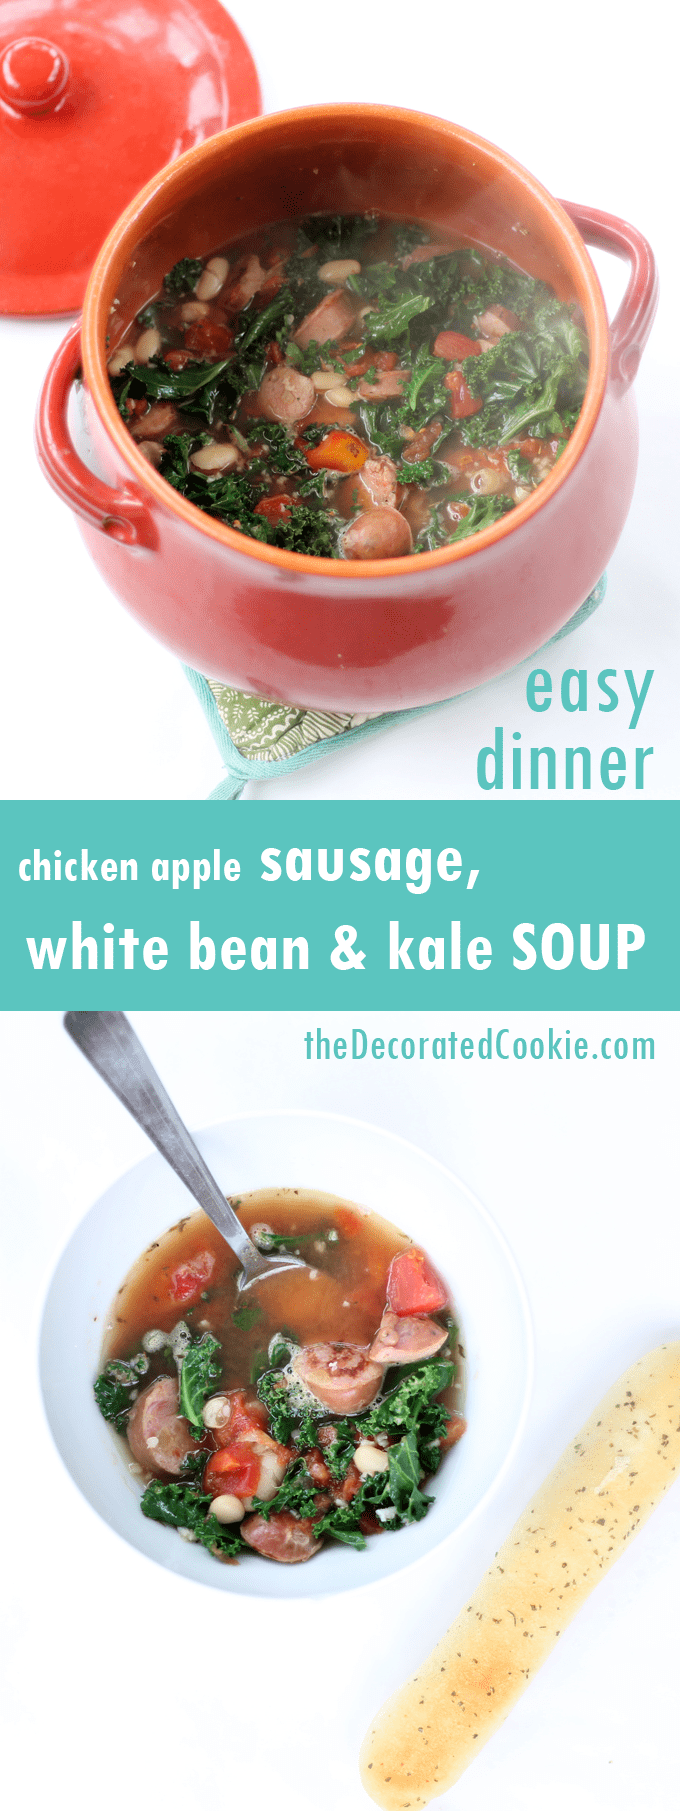 chicken apple sausage, white bean and kale SOUP, easy dinner